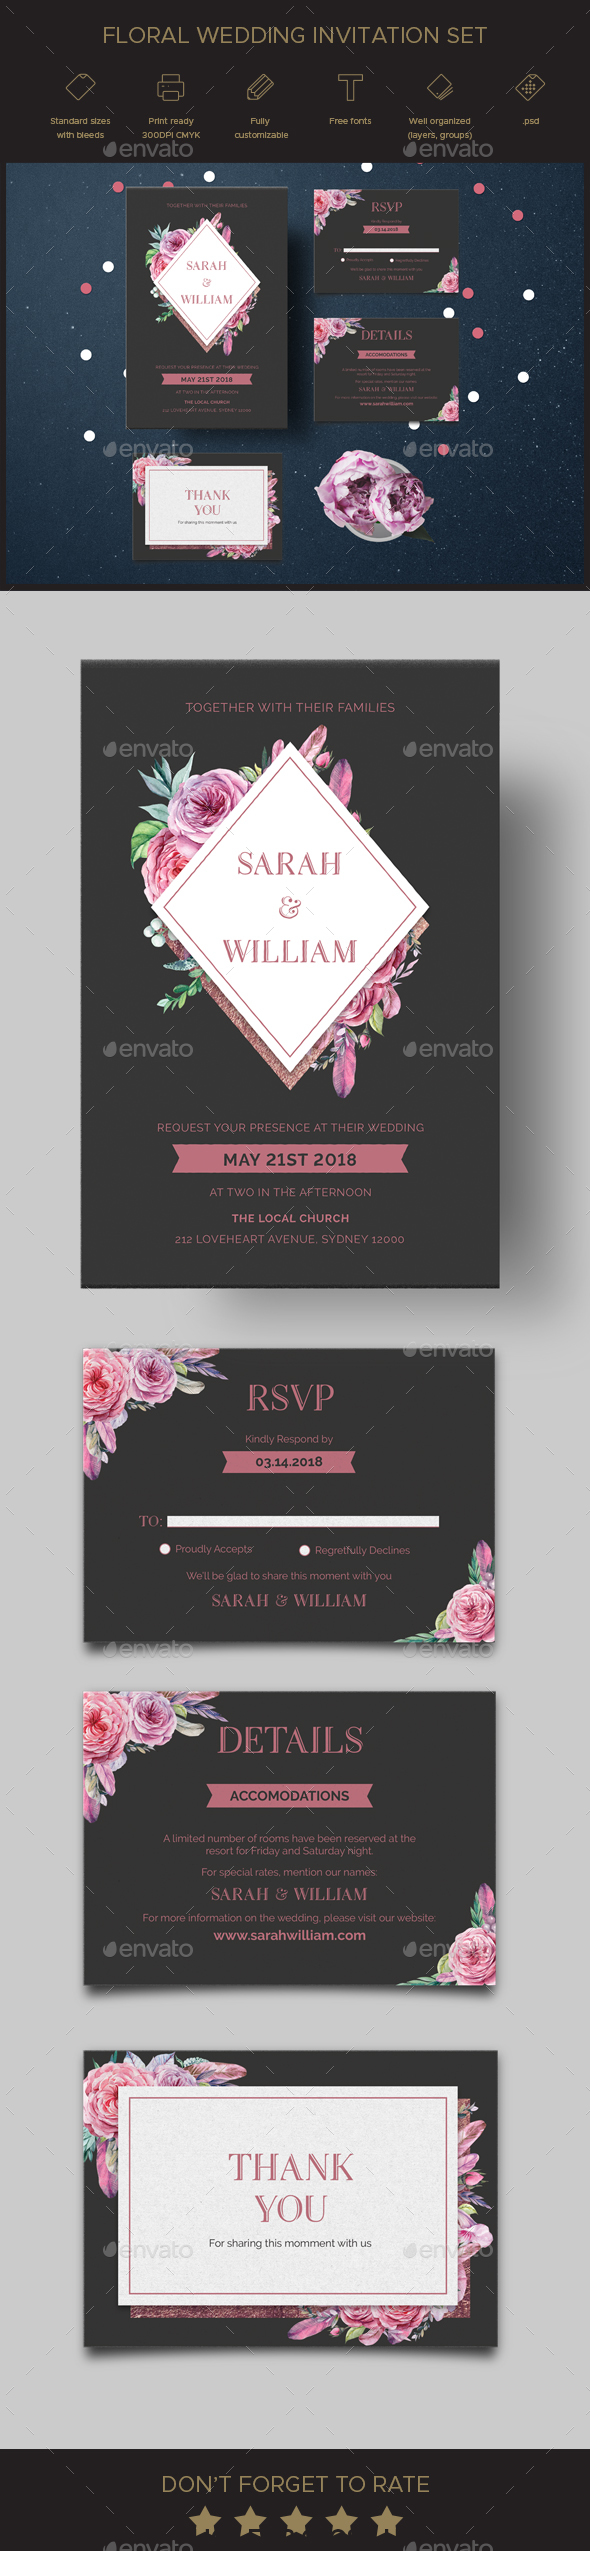 Floral Wedding Invitation Set - Weddings Cards & Invites